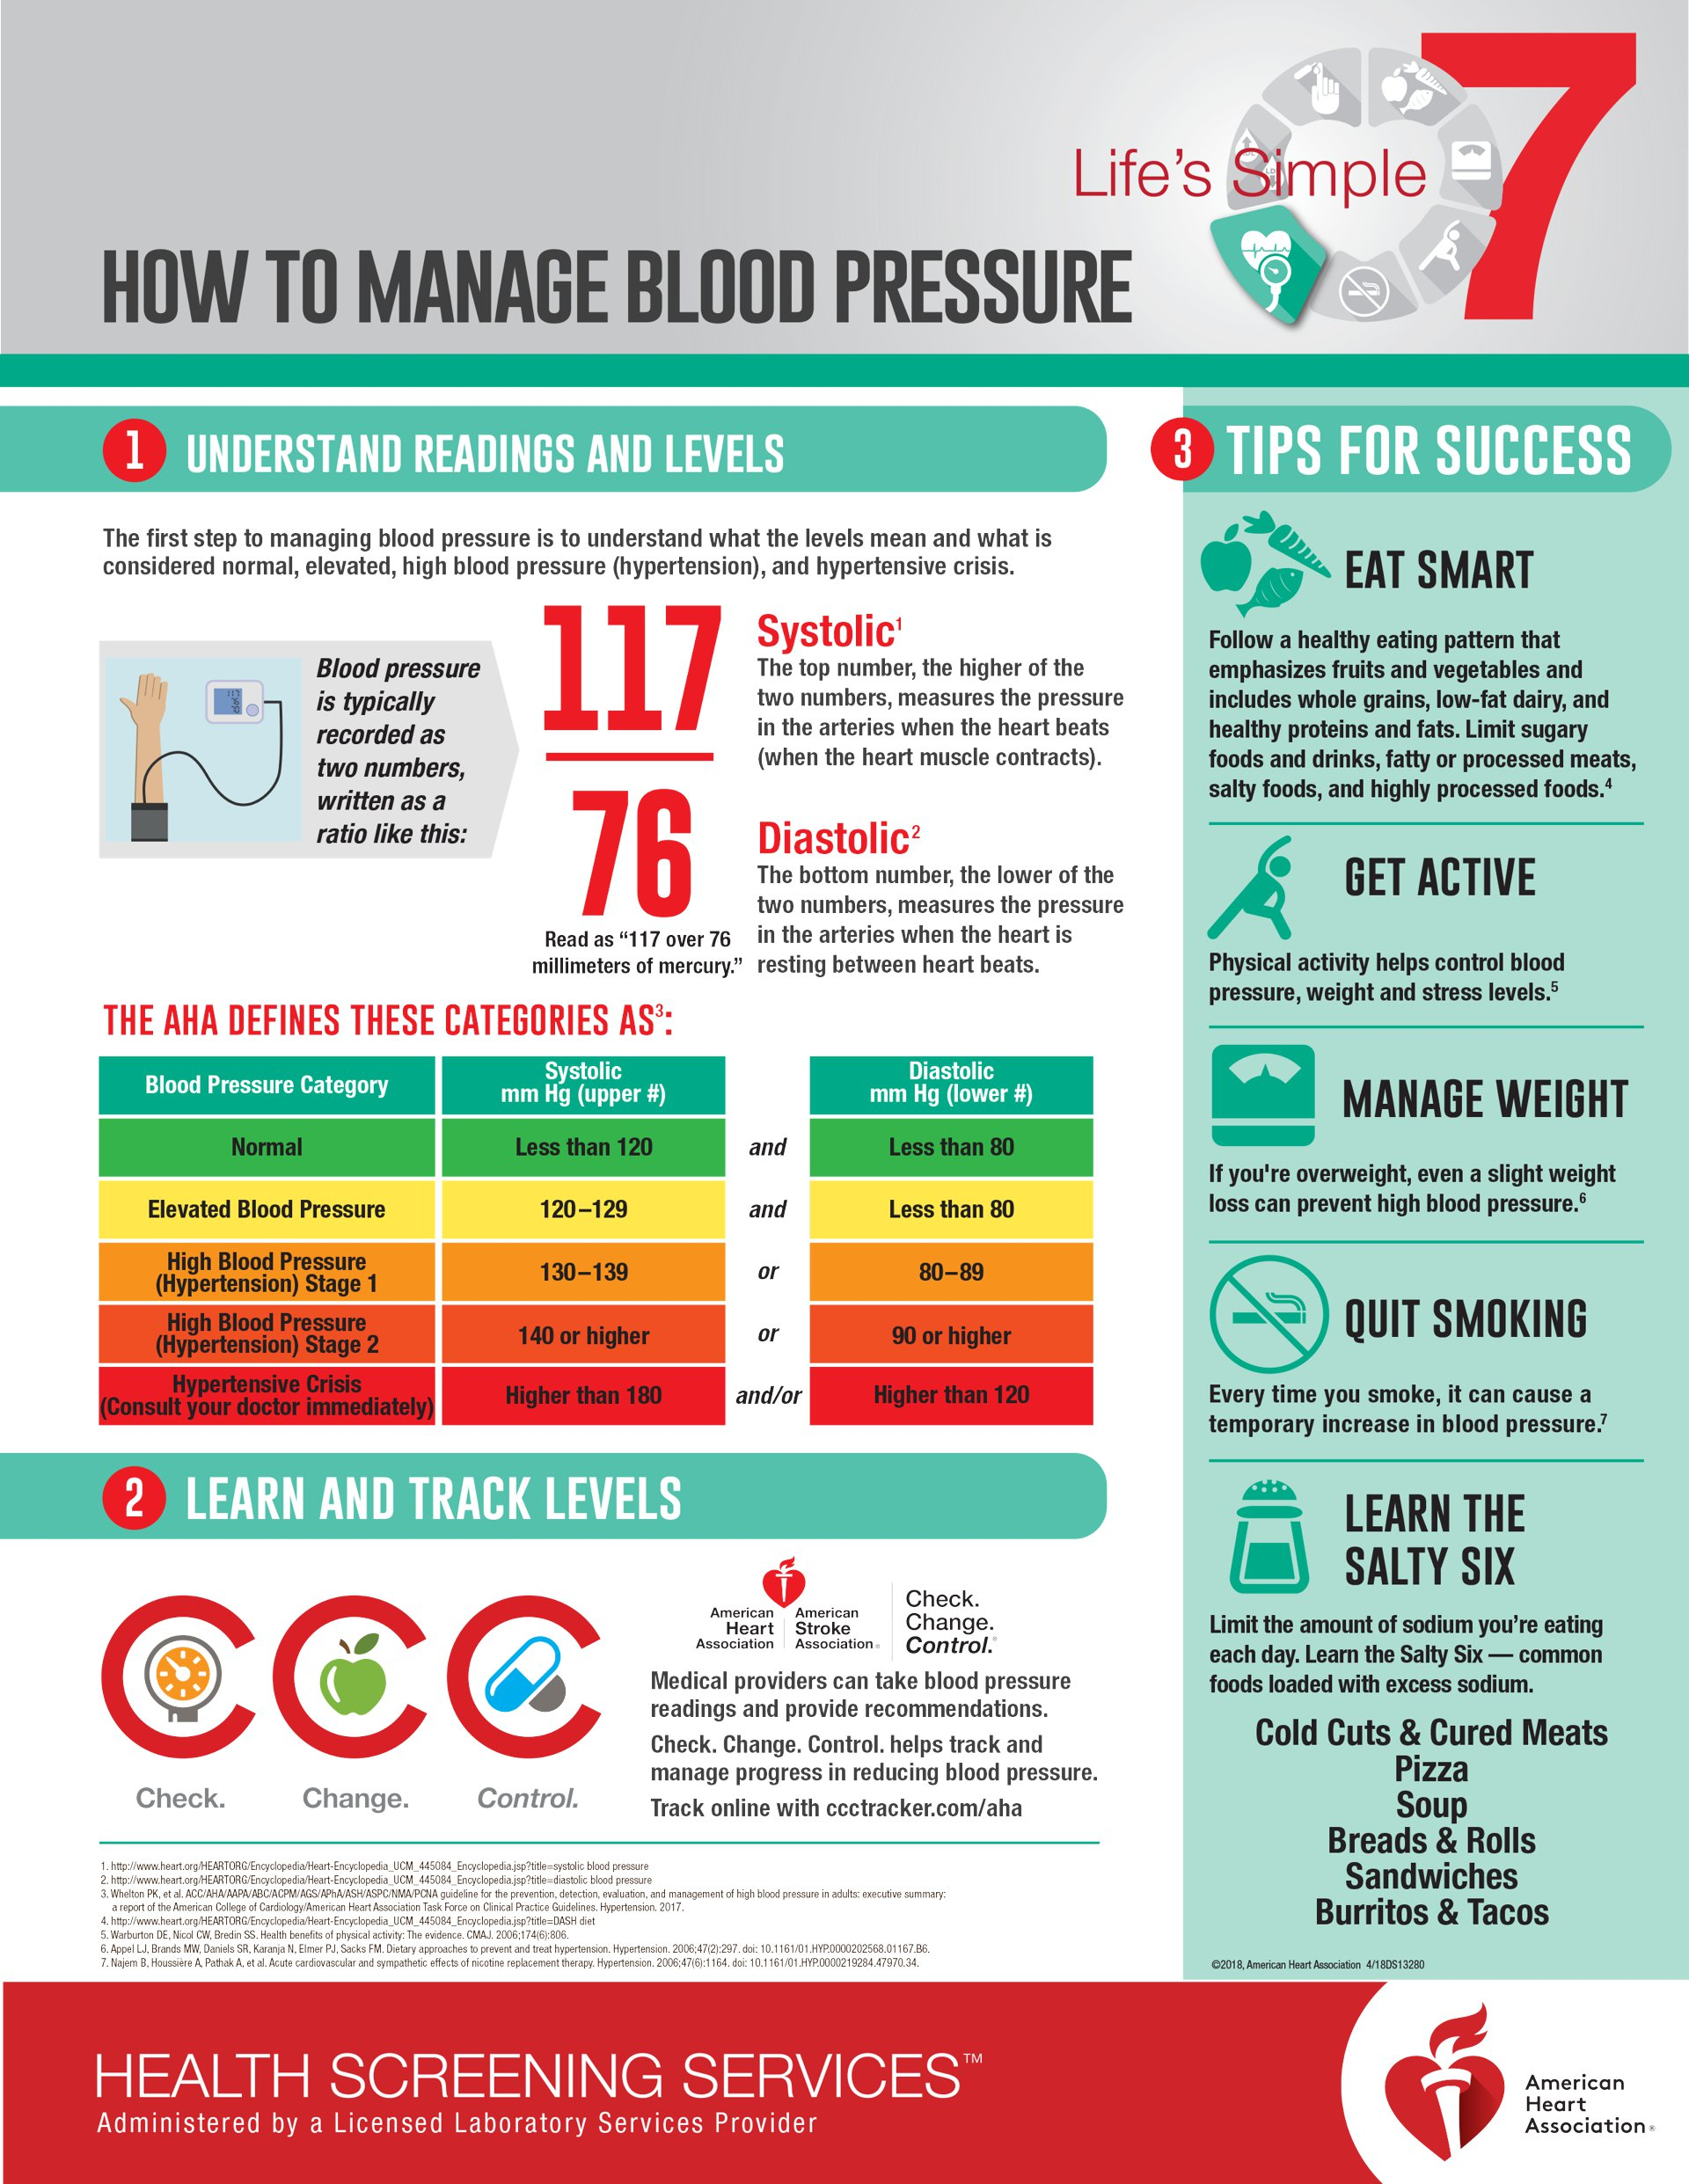 How to manage blood pressure infographic